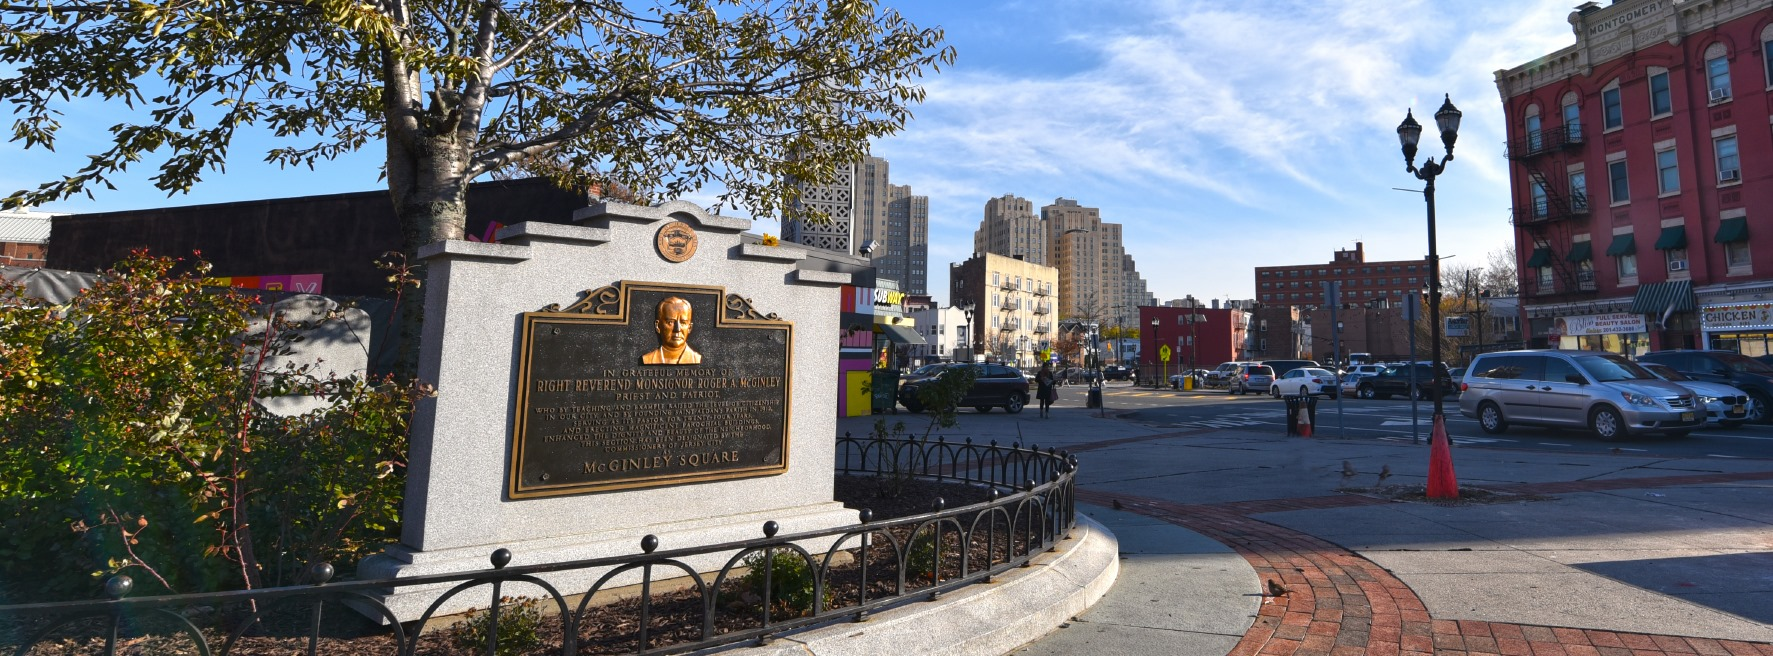 McGinley Square Plaza, the Heart of Jersey City.